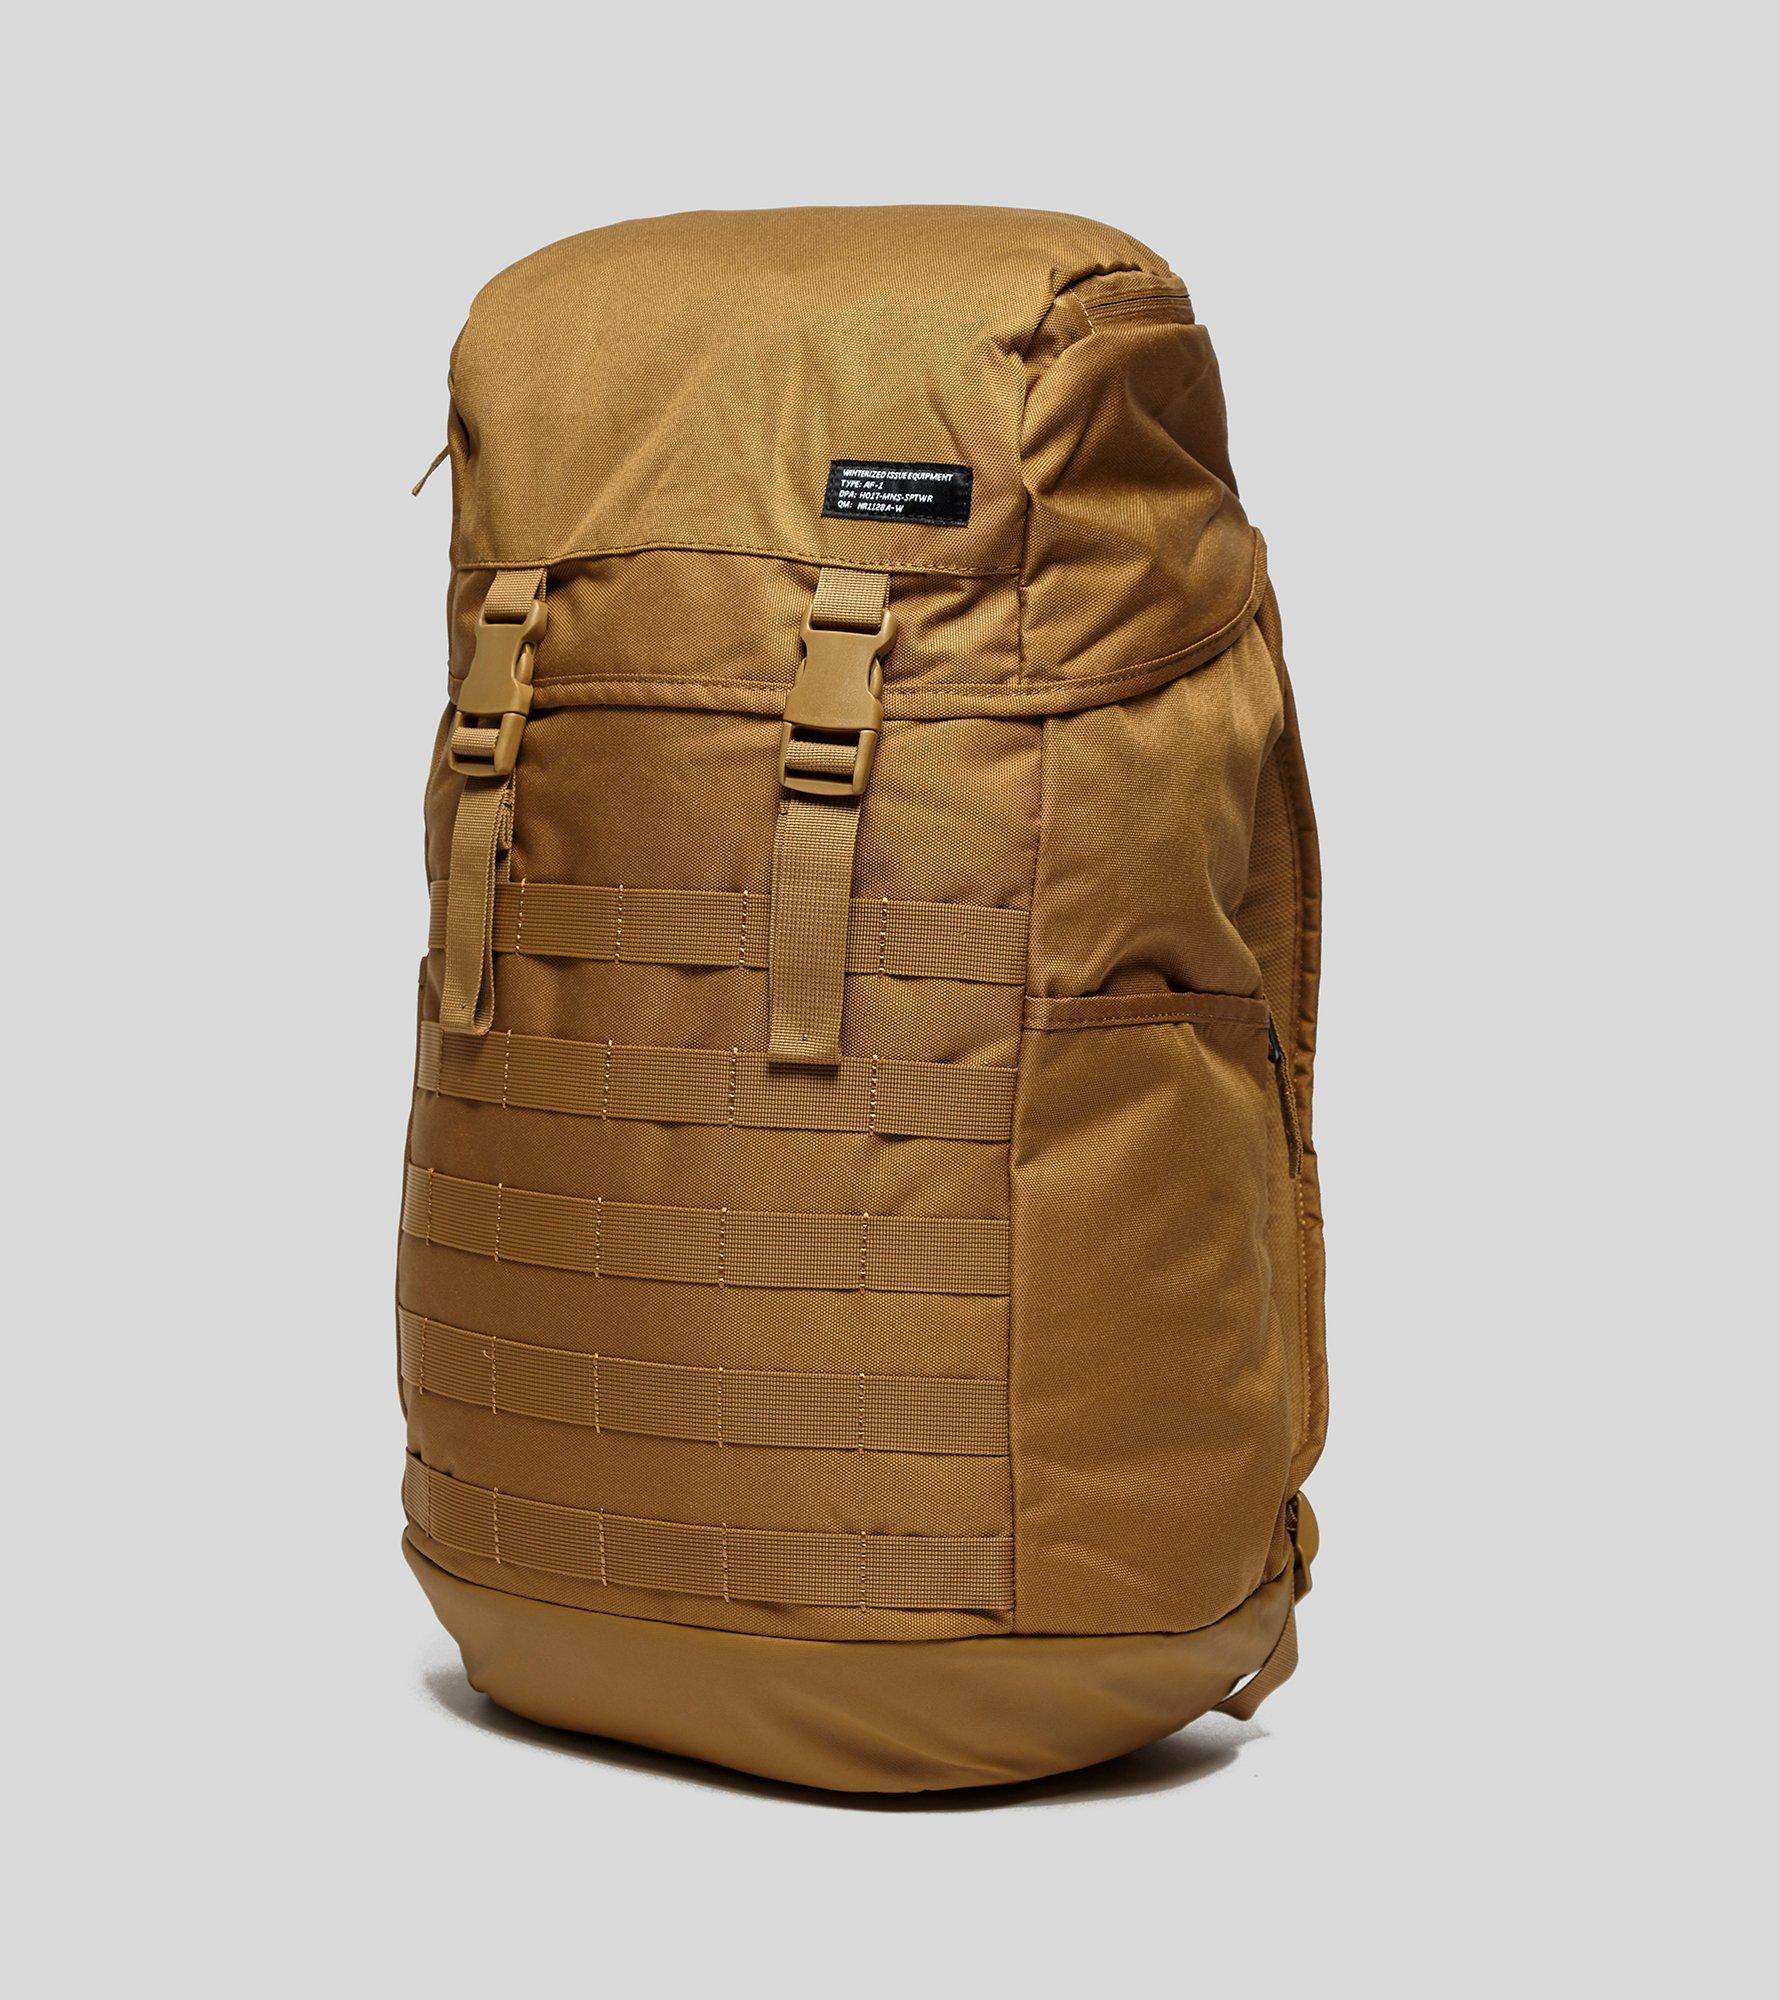 Single Strap Backpack Nike - CEAGESP 5aba87a4b26f